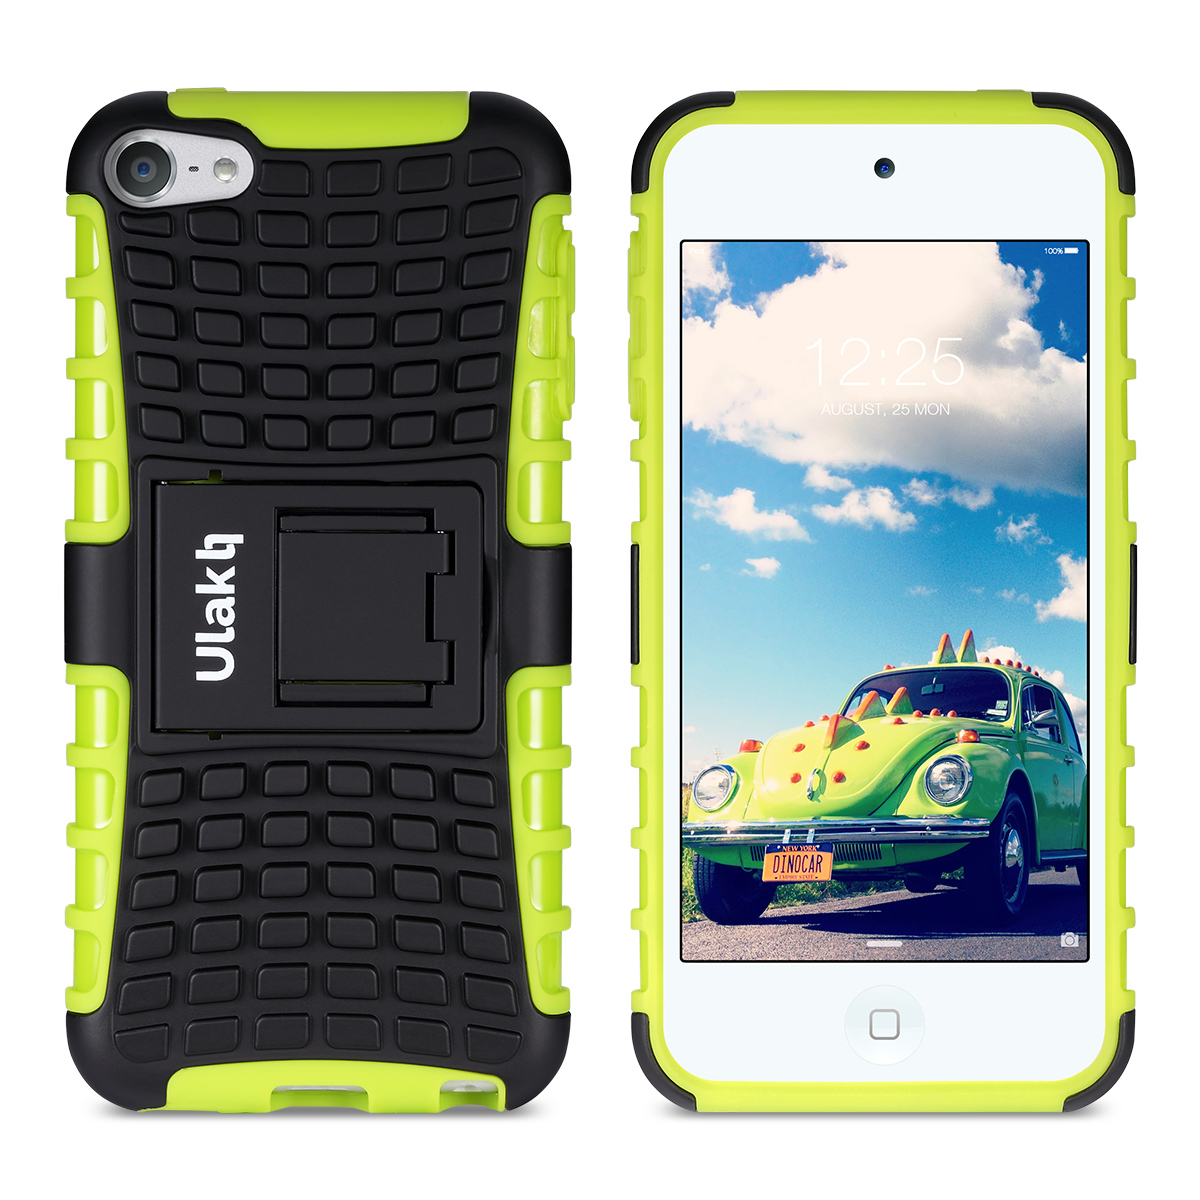 Hybrid-Hard-Protective-Silicon-TPU-Case-for-Apple-iPod-Touch-5-6th-Generation thumbnail 30